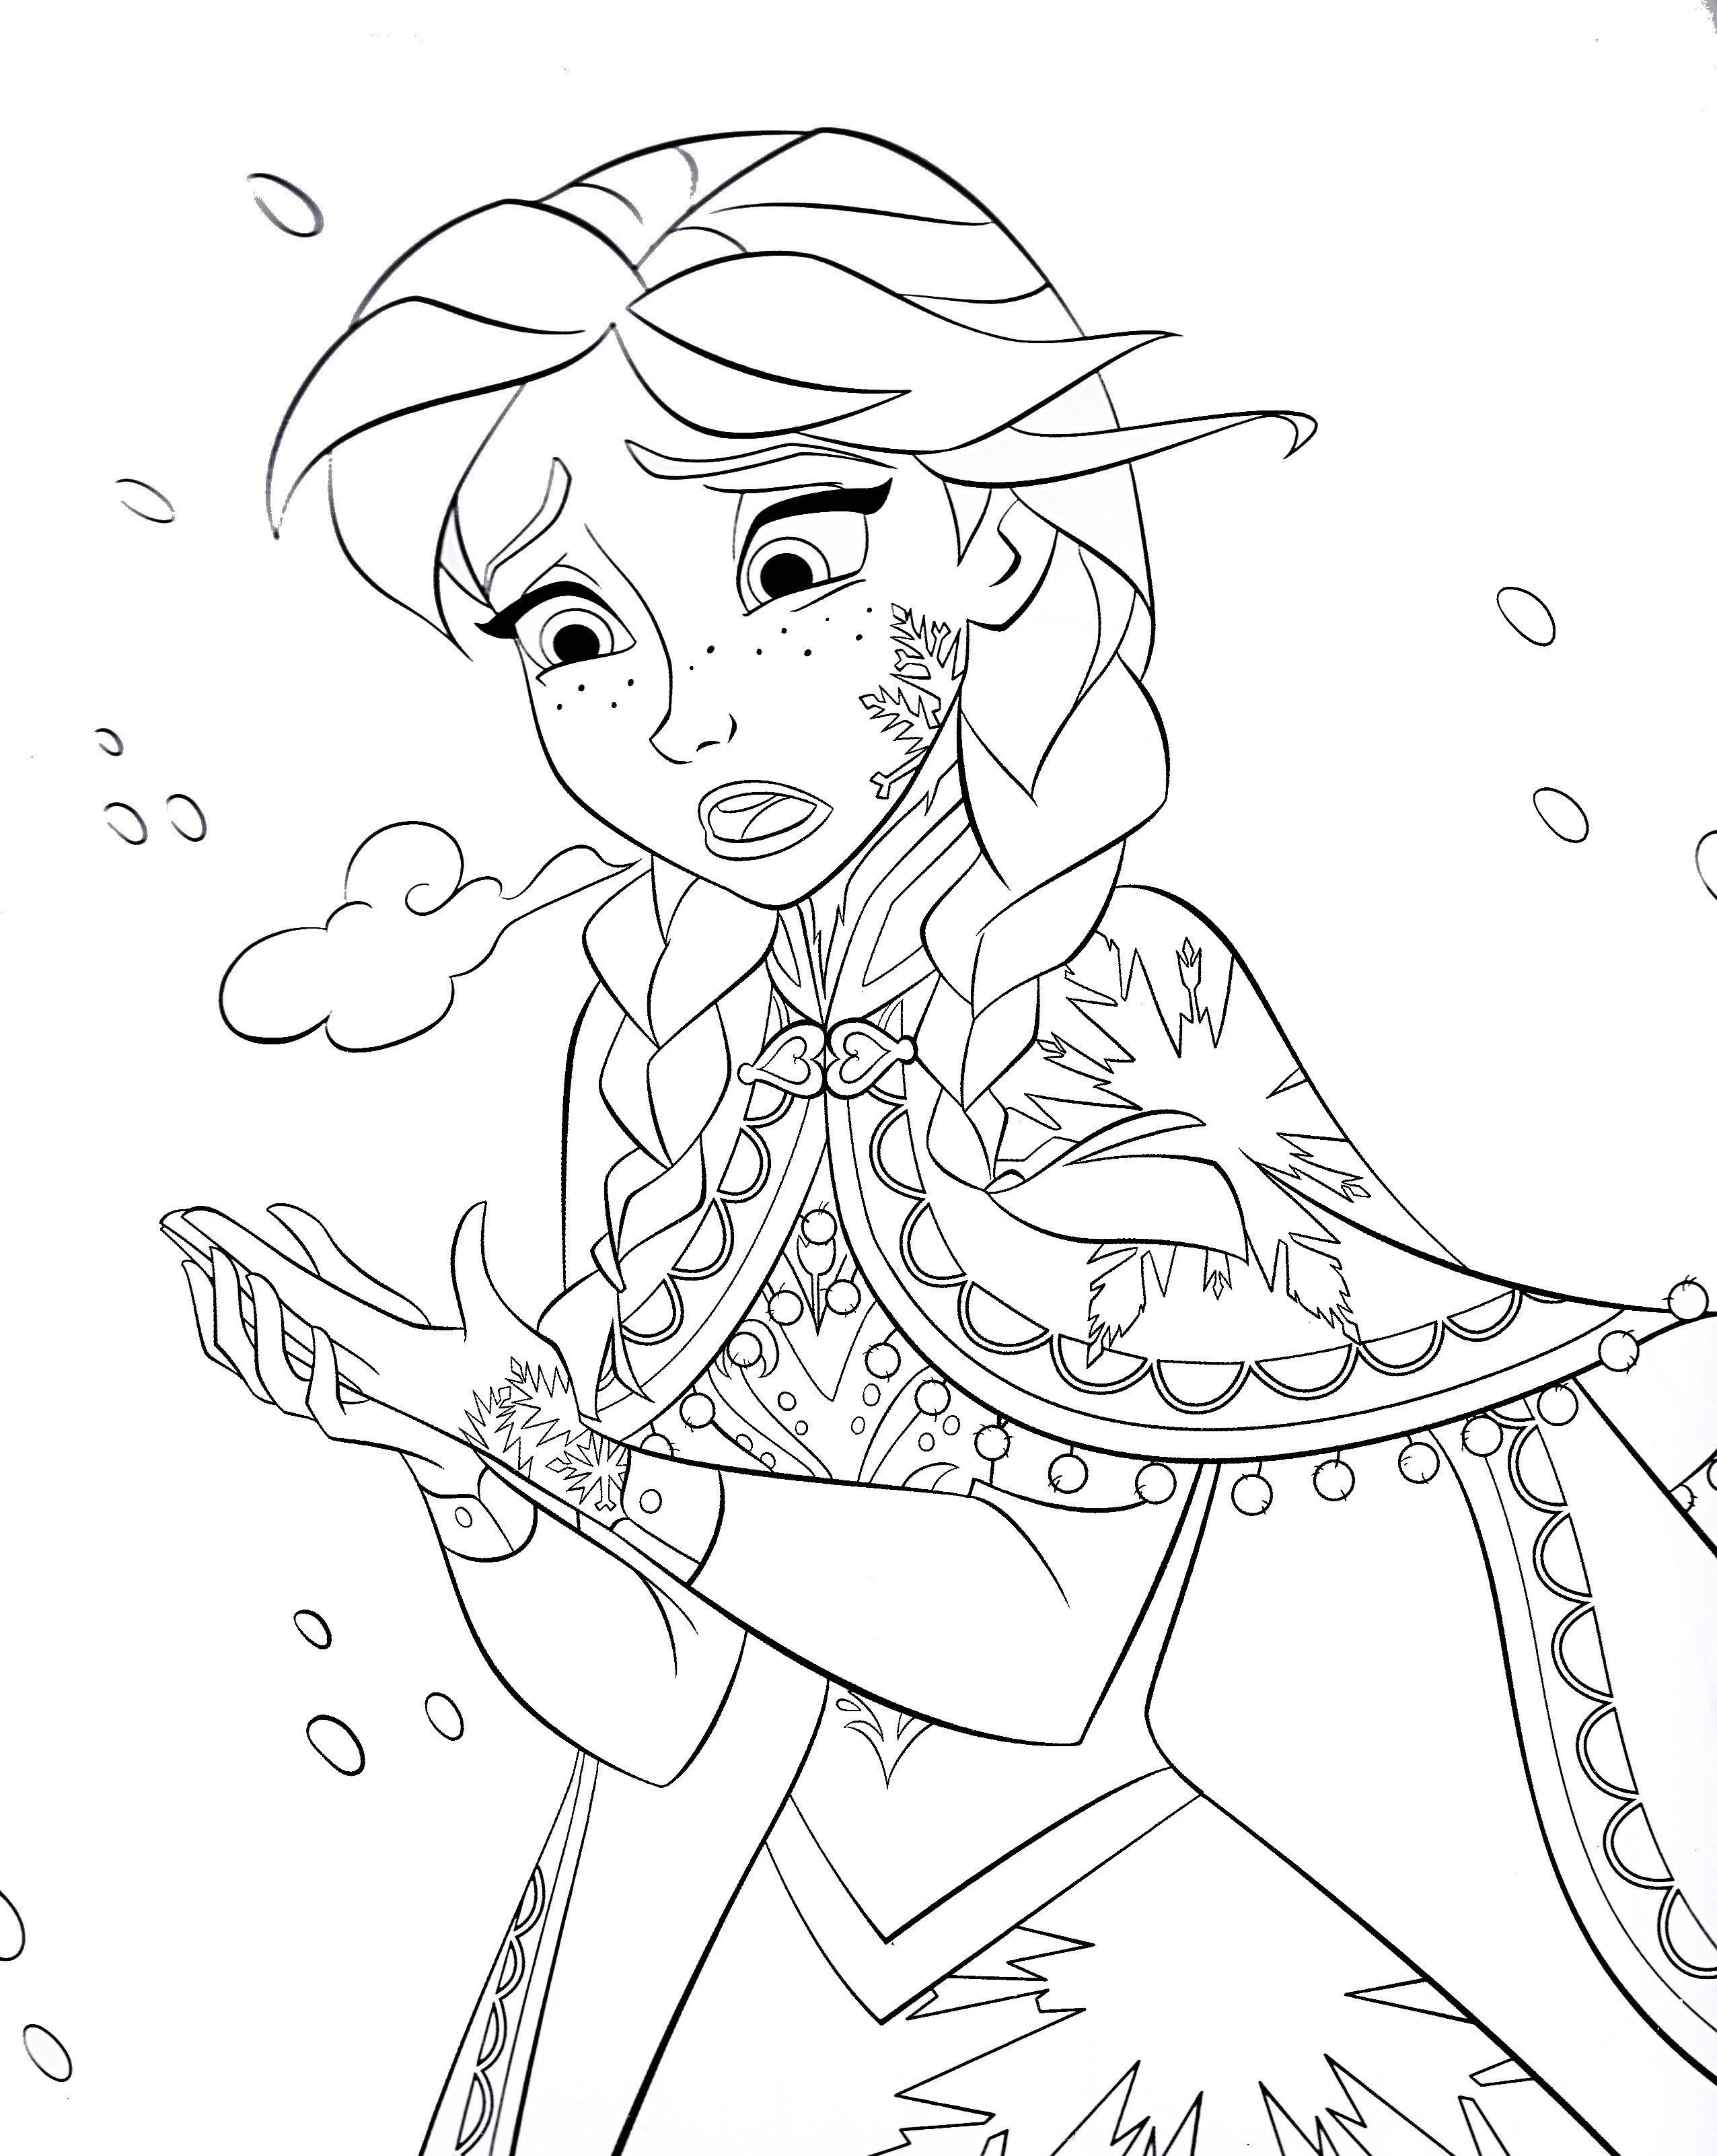 Pin on COLORING PAGES Bojanke